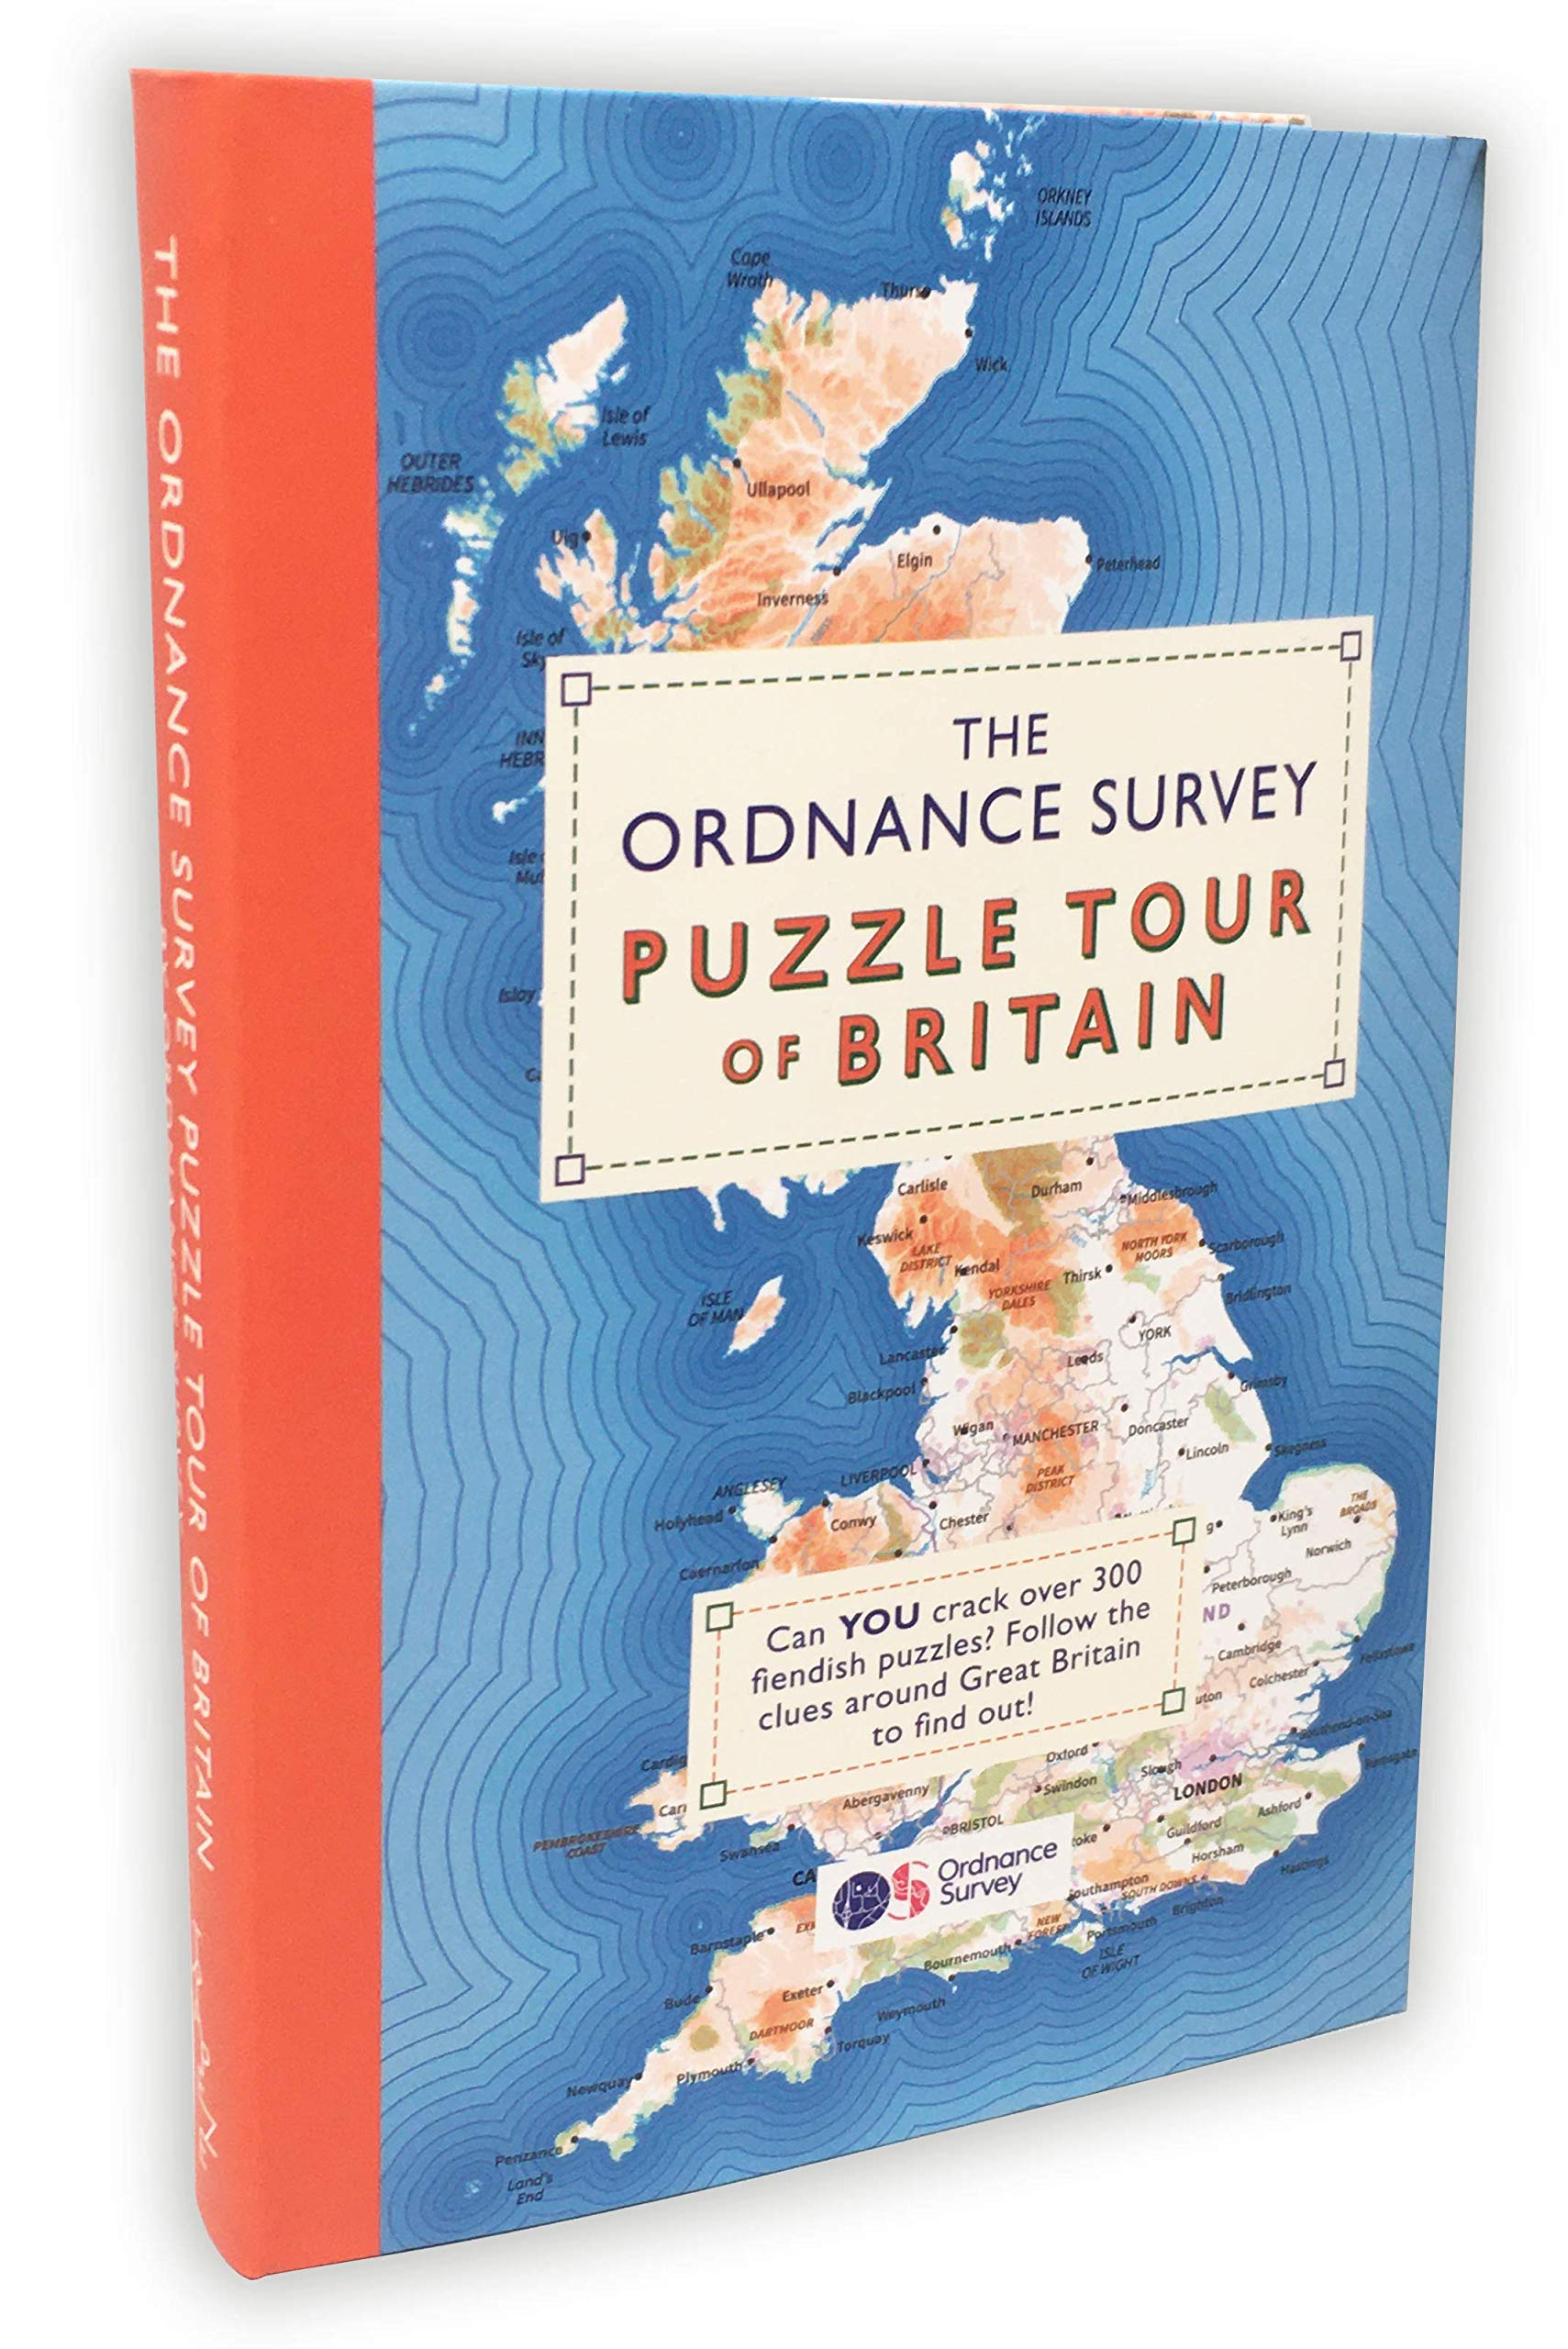 The Ordnance Survey Puzzle Tour of Britain 9781409184713  Ordnance Survey   Landeninformatie Groot-Brittannië